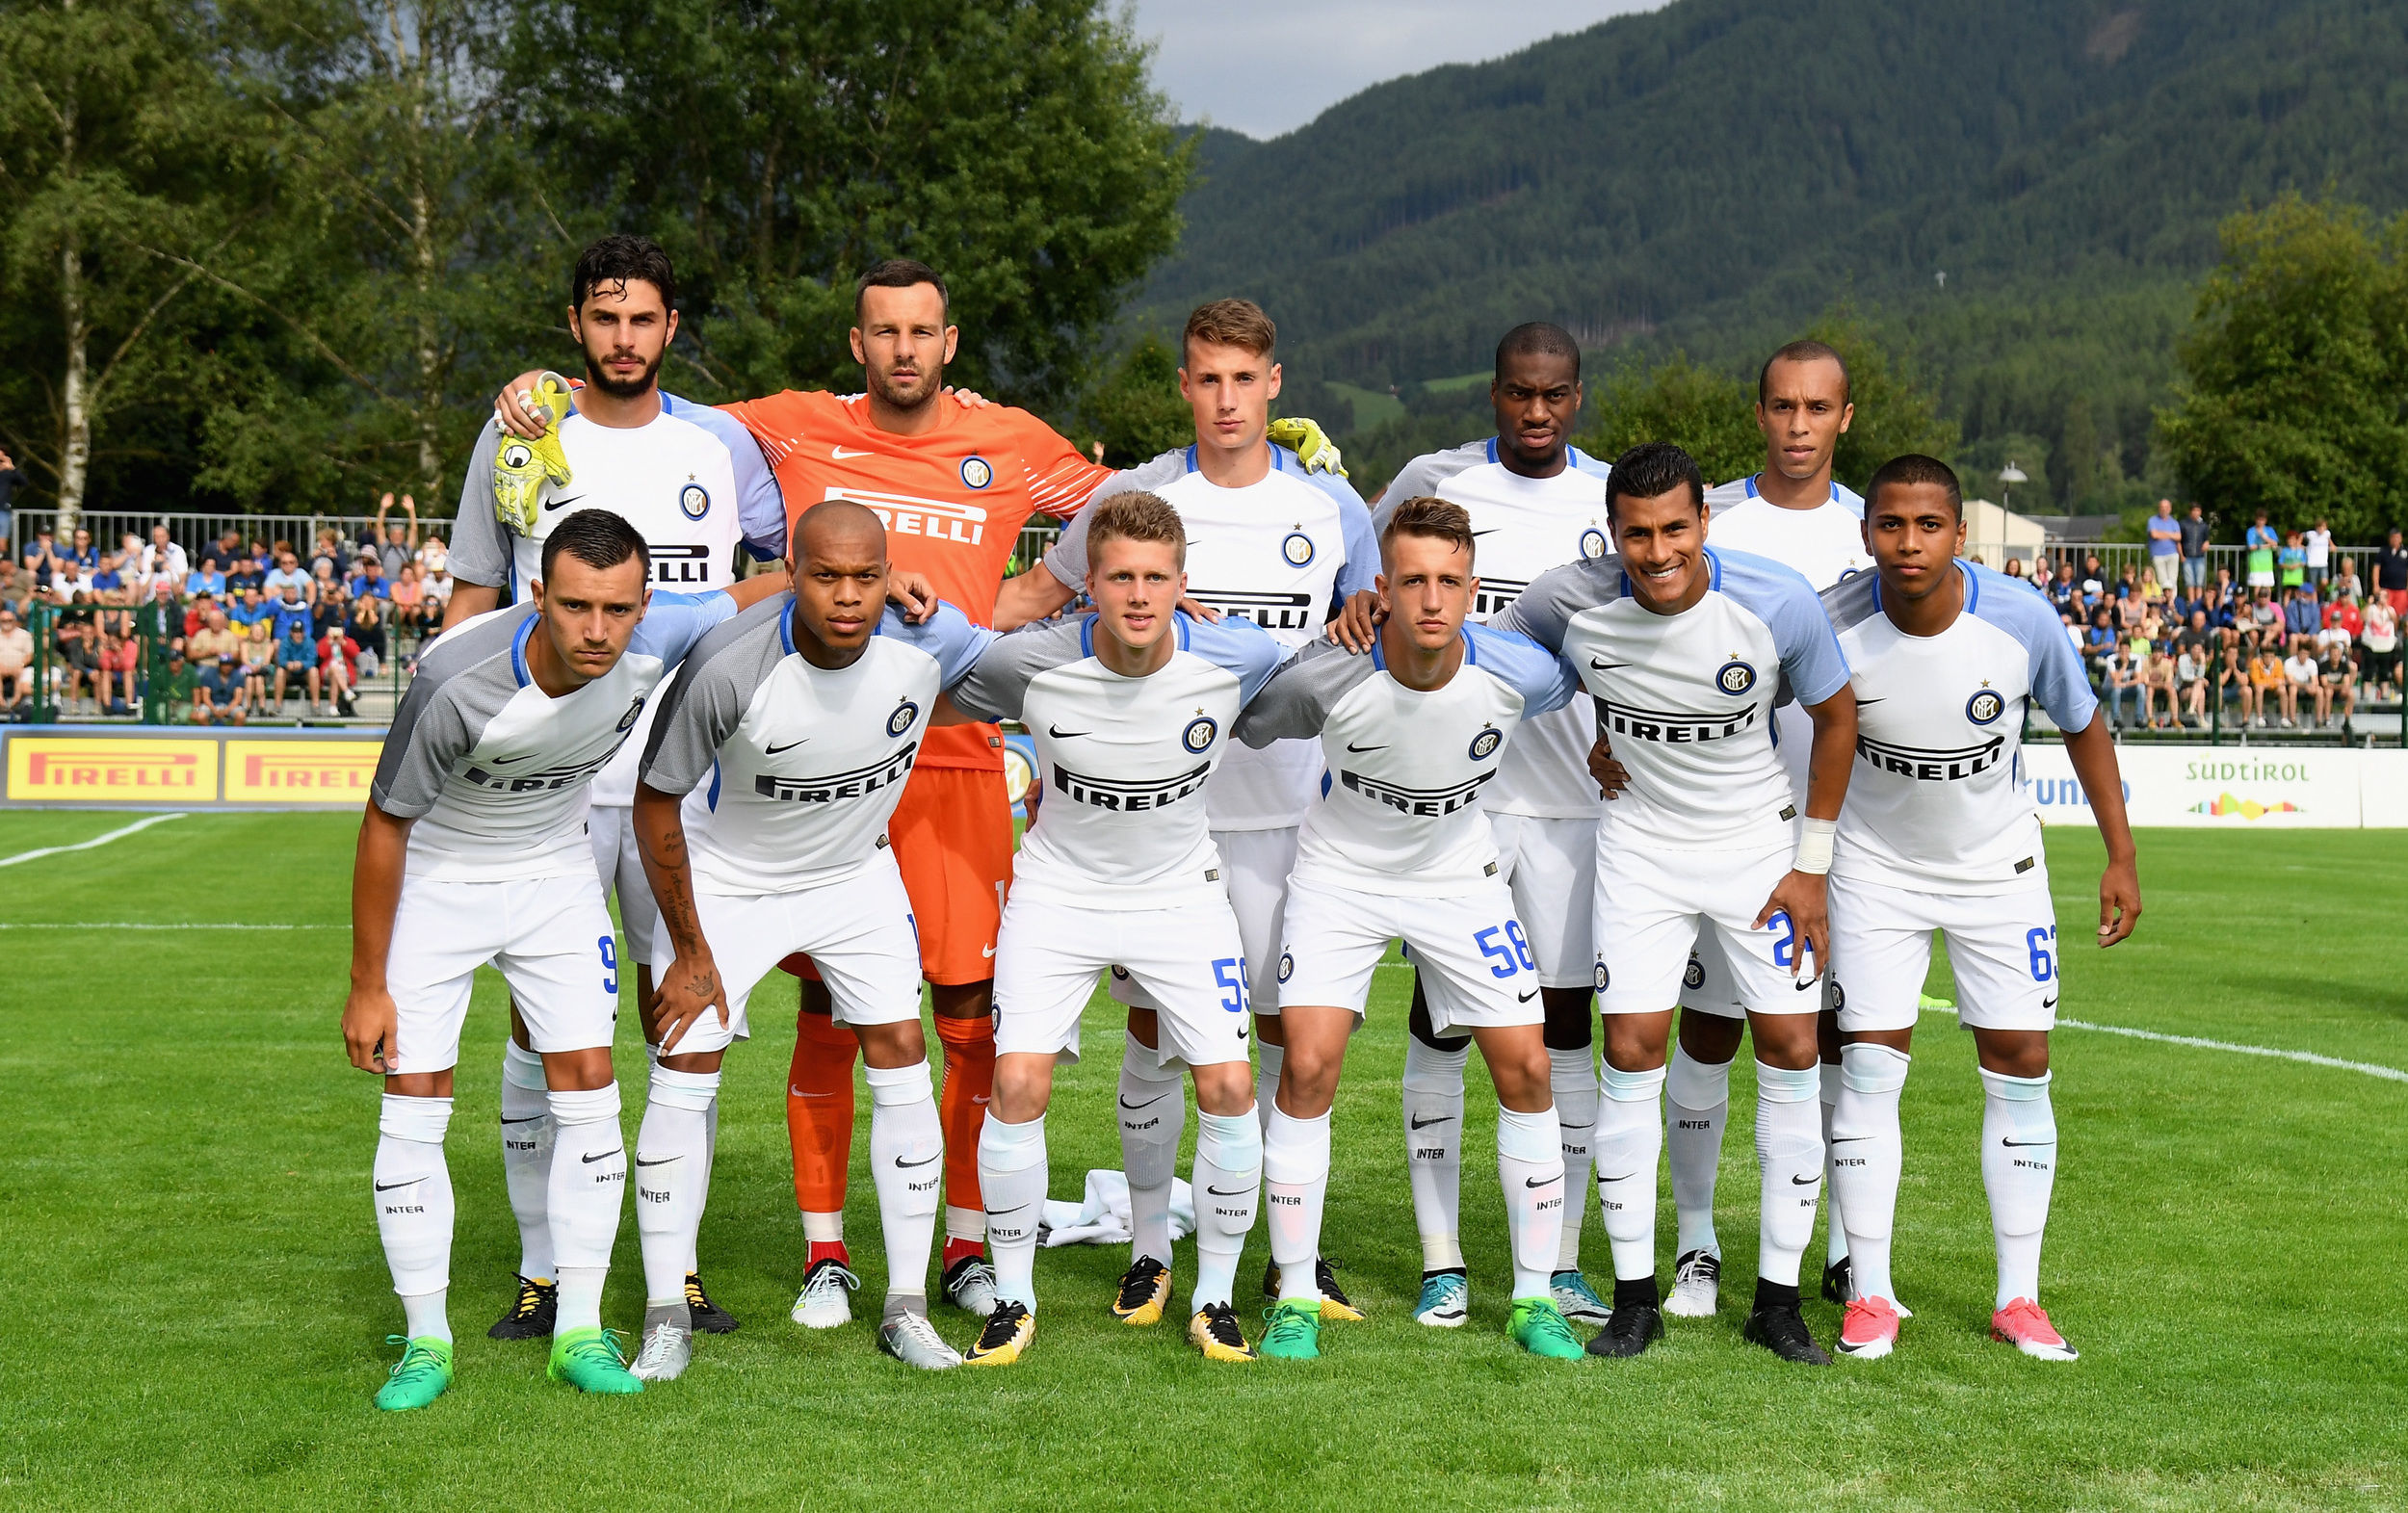 Images from Inter v WSG Wattens in Brunico